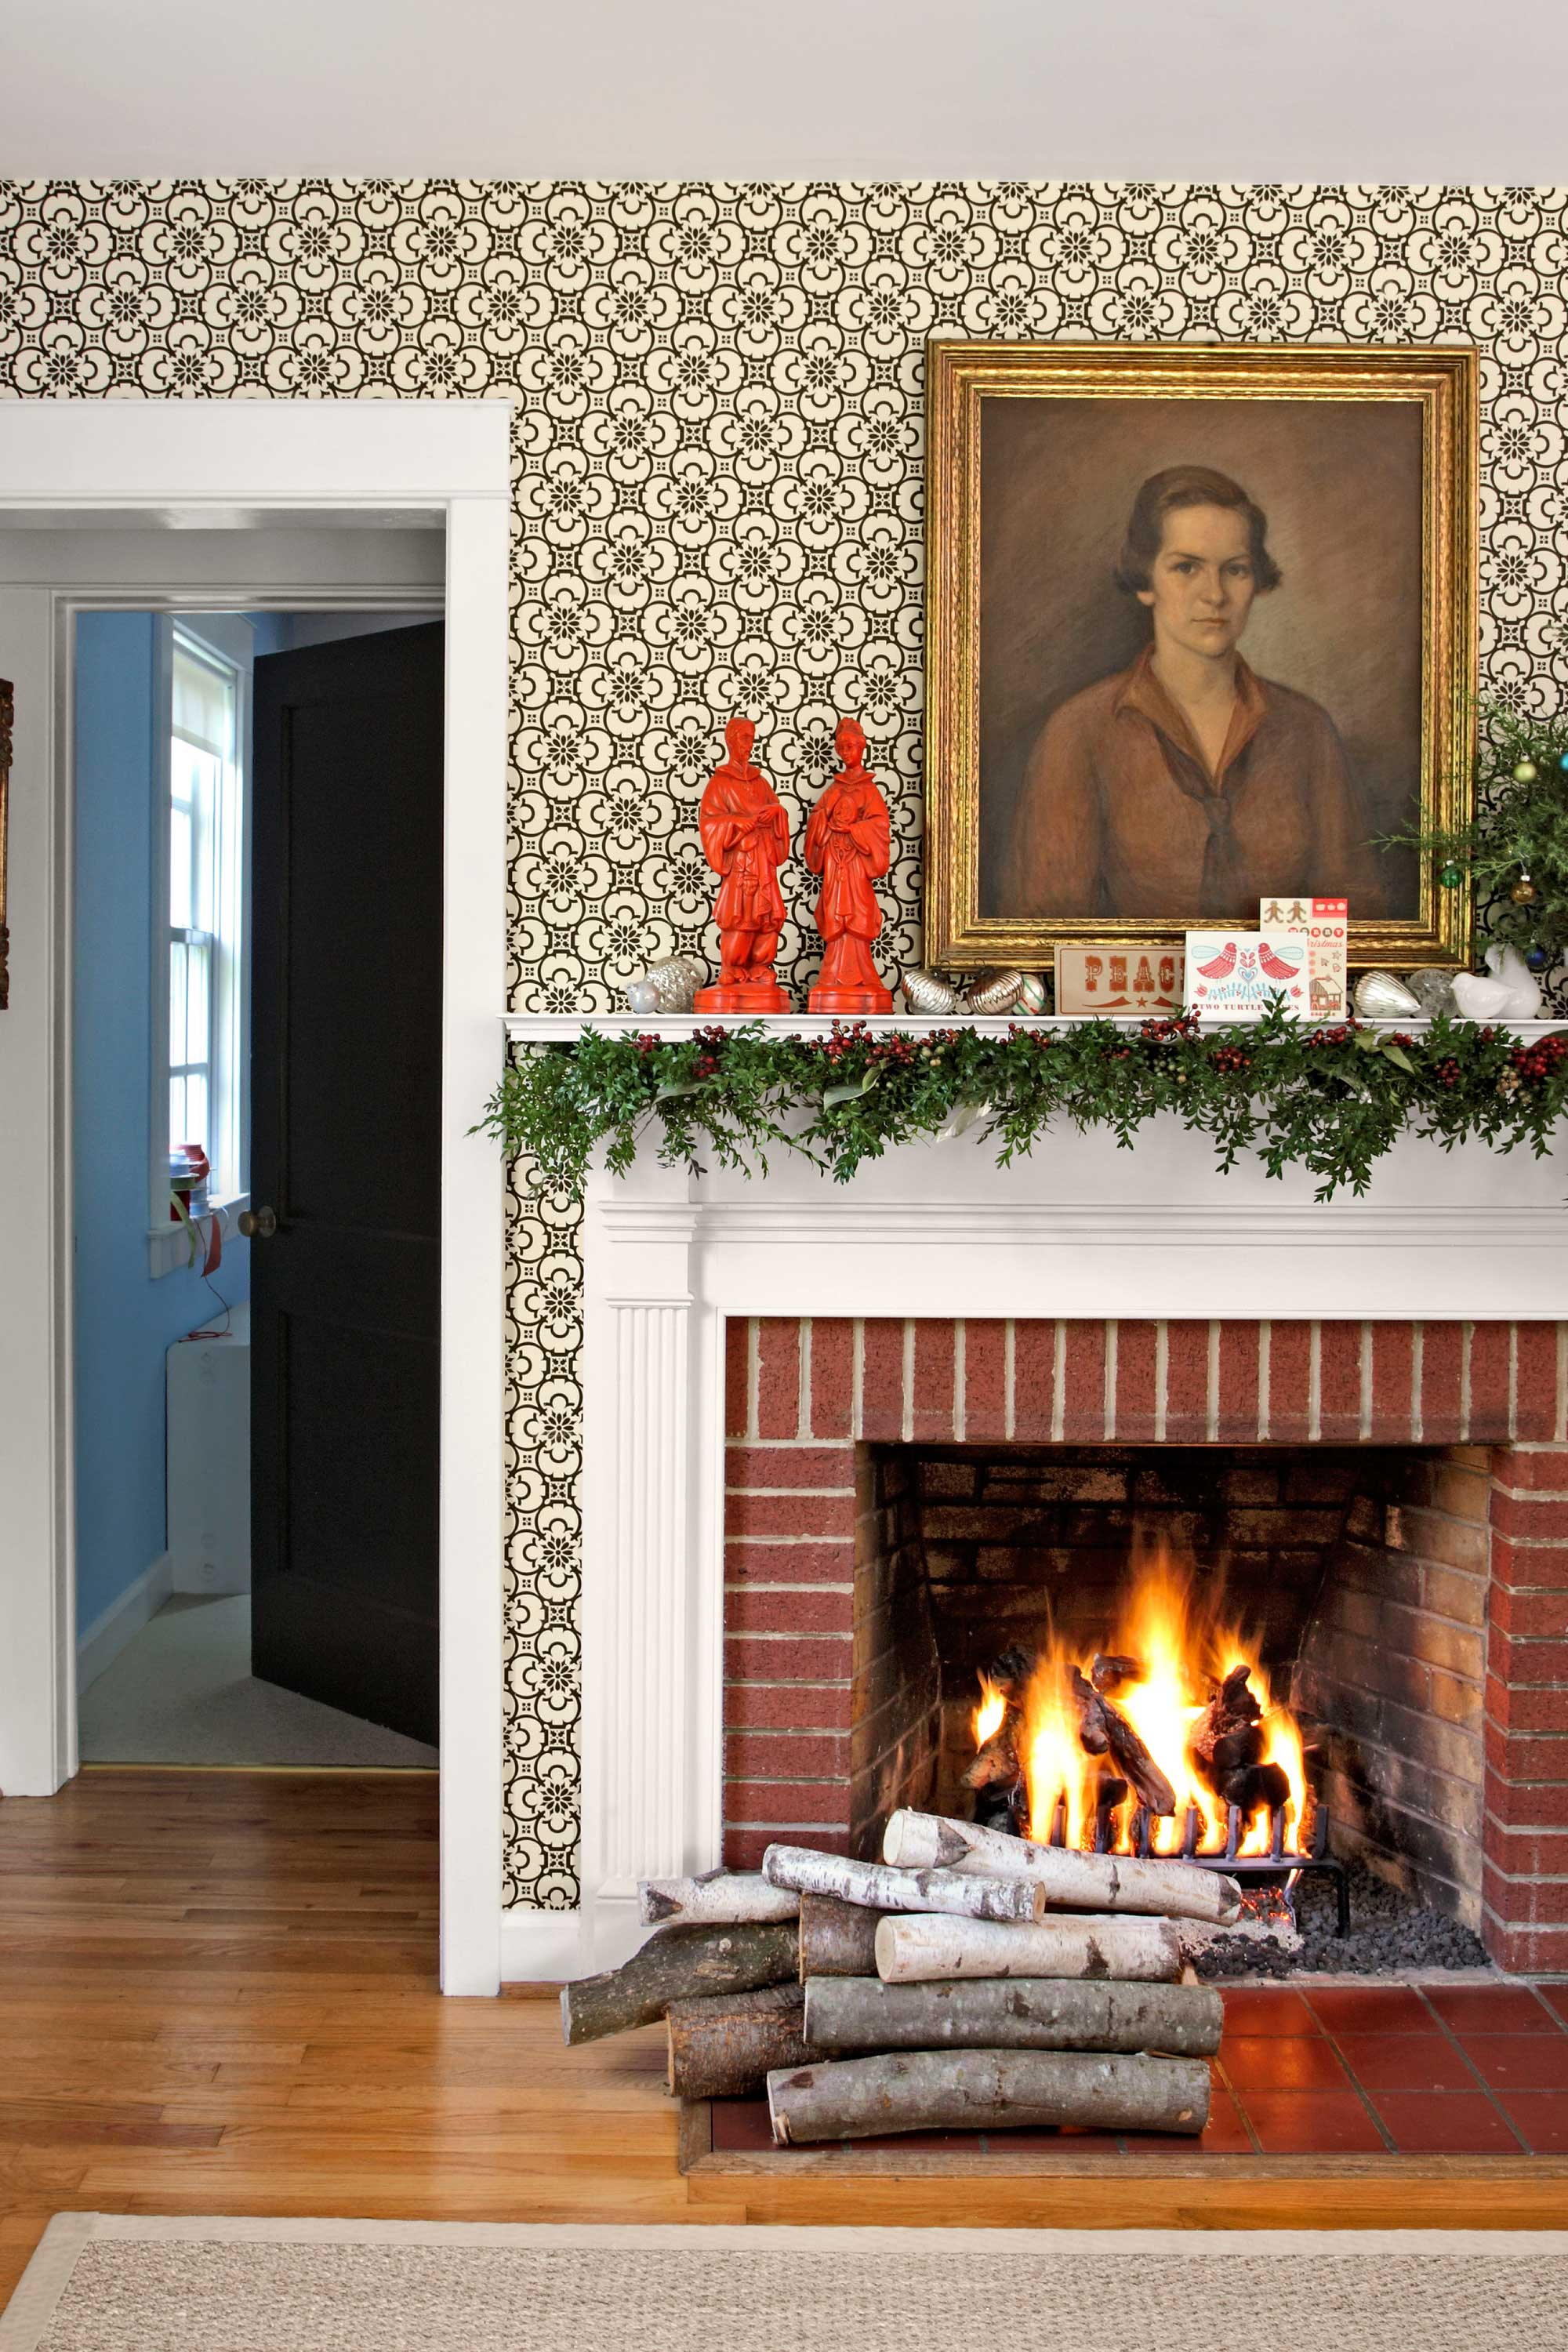 35 christmas mantel decorations ideas for holiday fireplace 35 christmas mantel decorations ideas for holiday fireplace mantel decorating